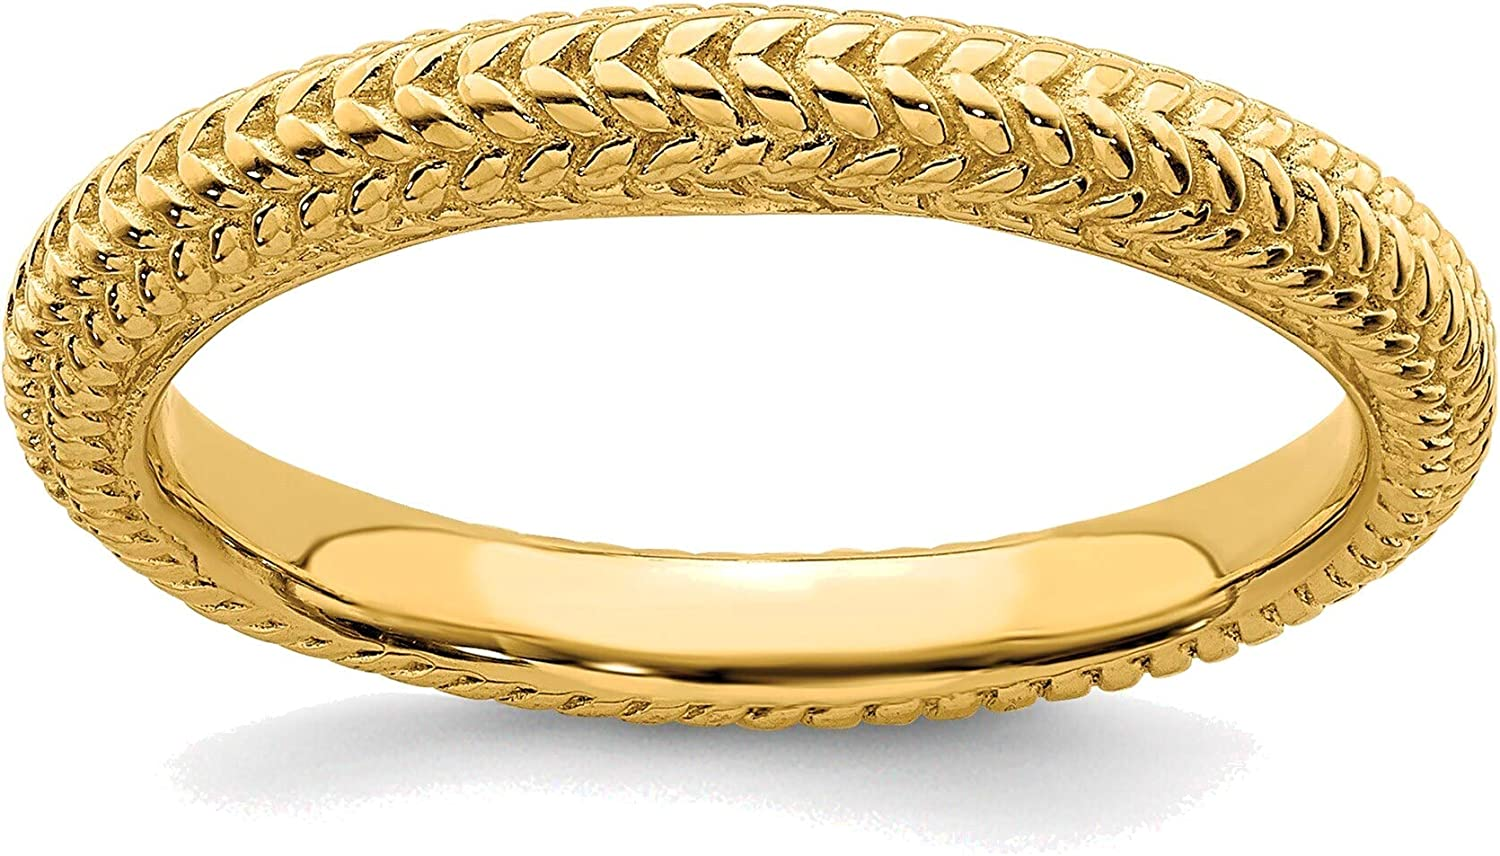 Bonyak Houston supreme Mall Jewelry Solid Sterling Silver Stackable Expressions Gold-